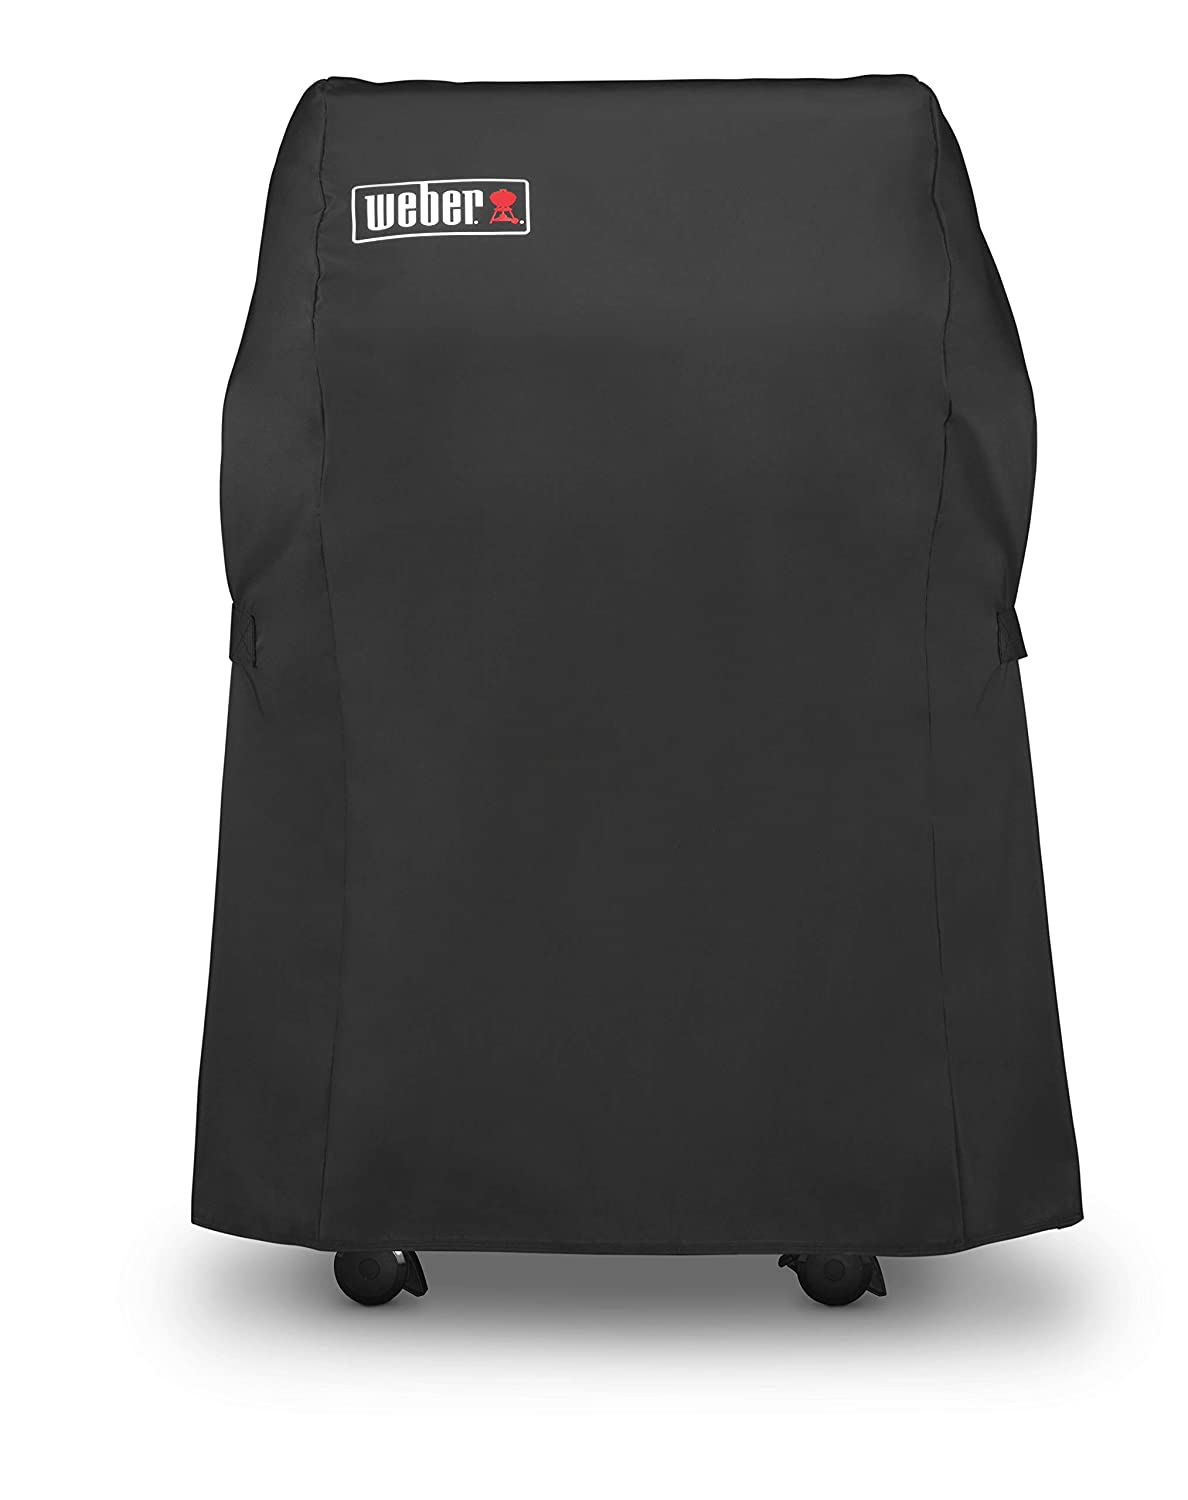 "Weber 7105 Grill Cover for Spirit 210 Series Gas Grills, 29.5""L x 25.8""W x 42.8""H, Black"